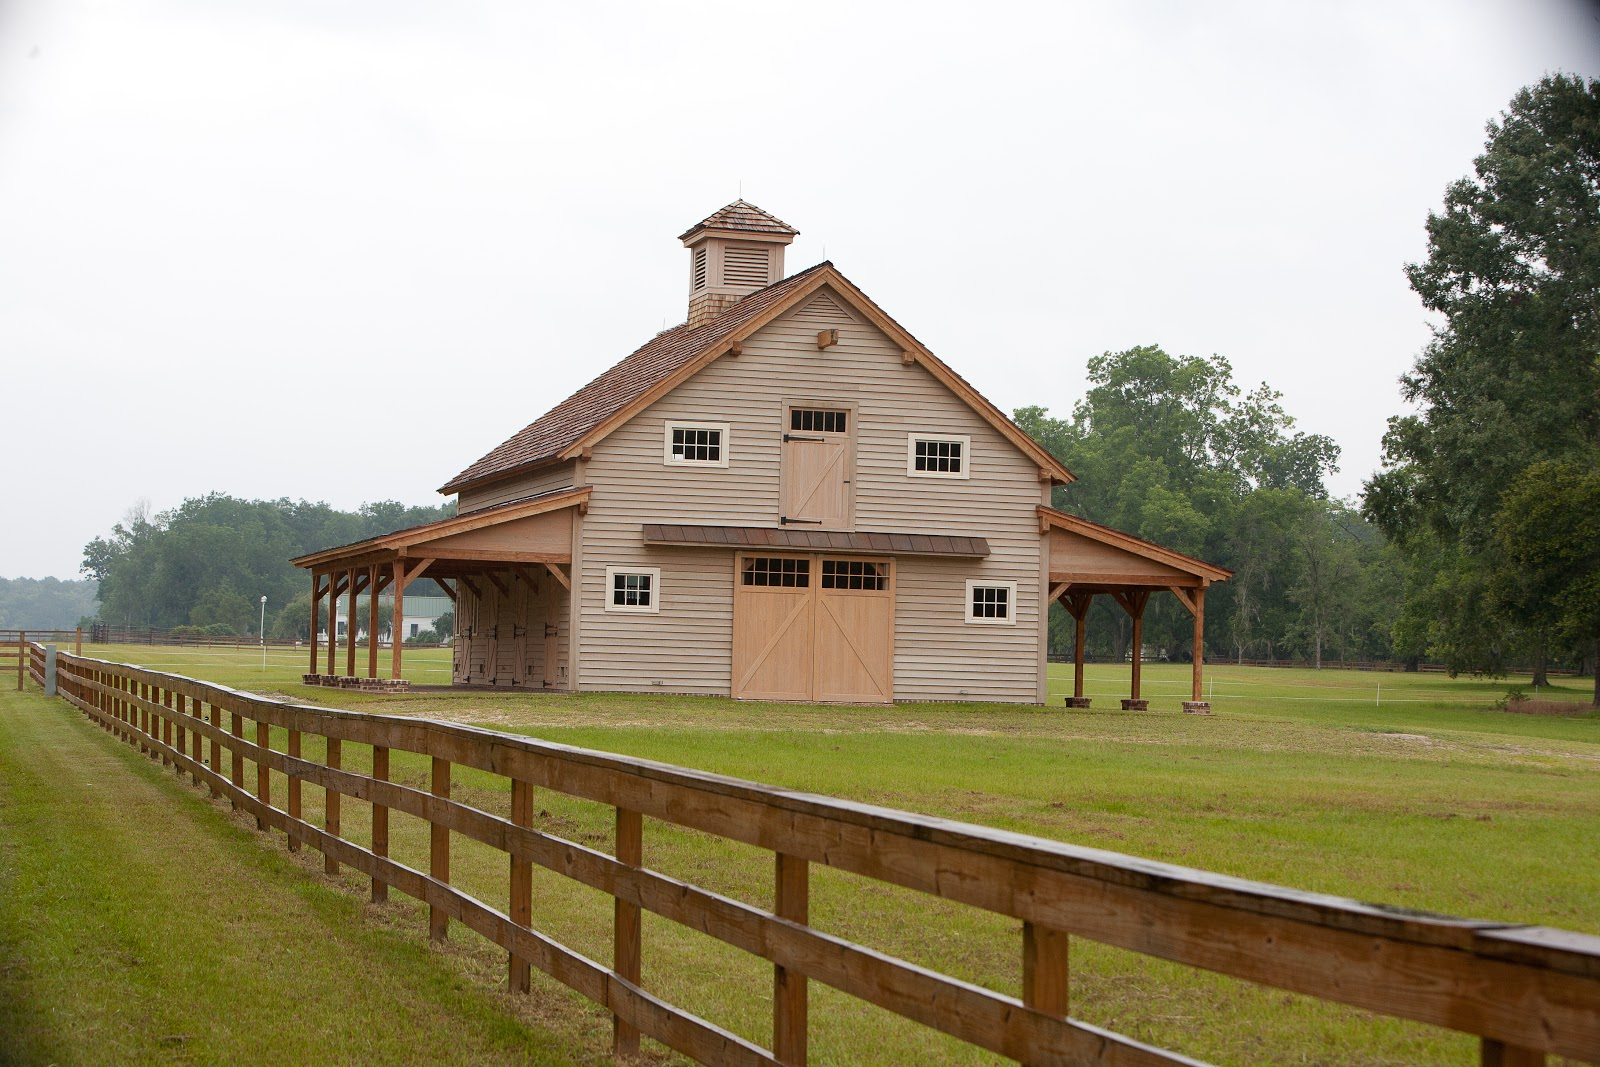 timber frame barn - photo #32